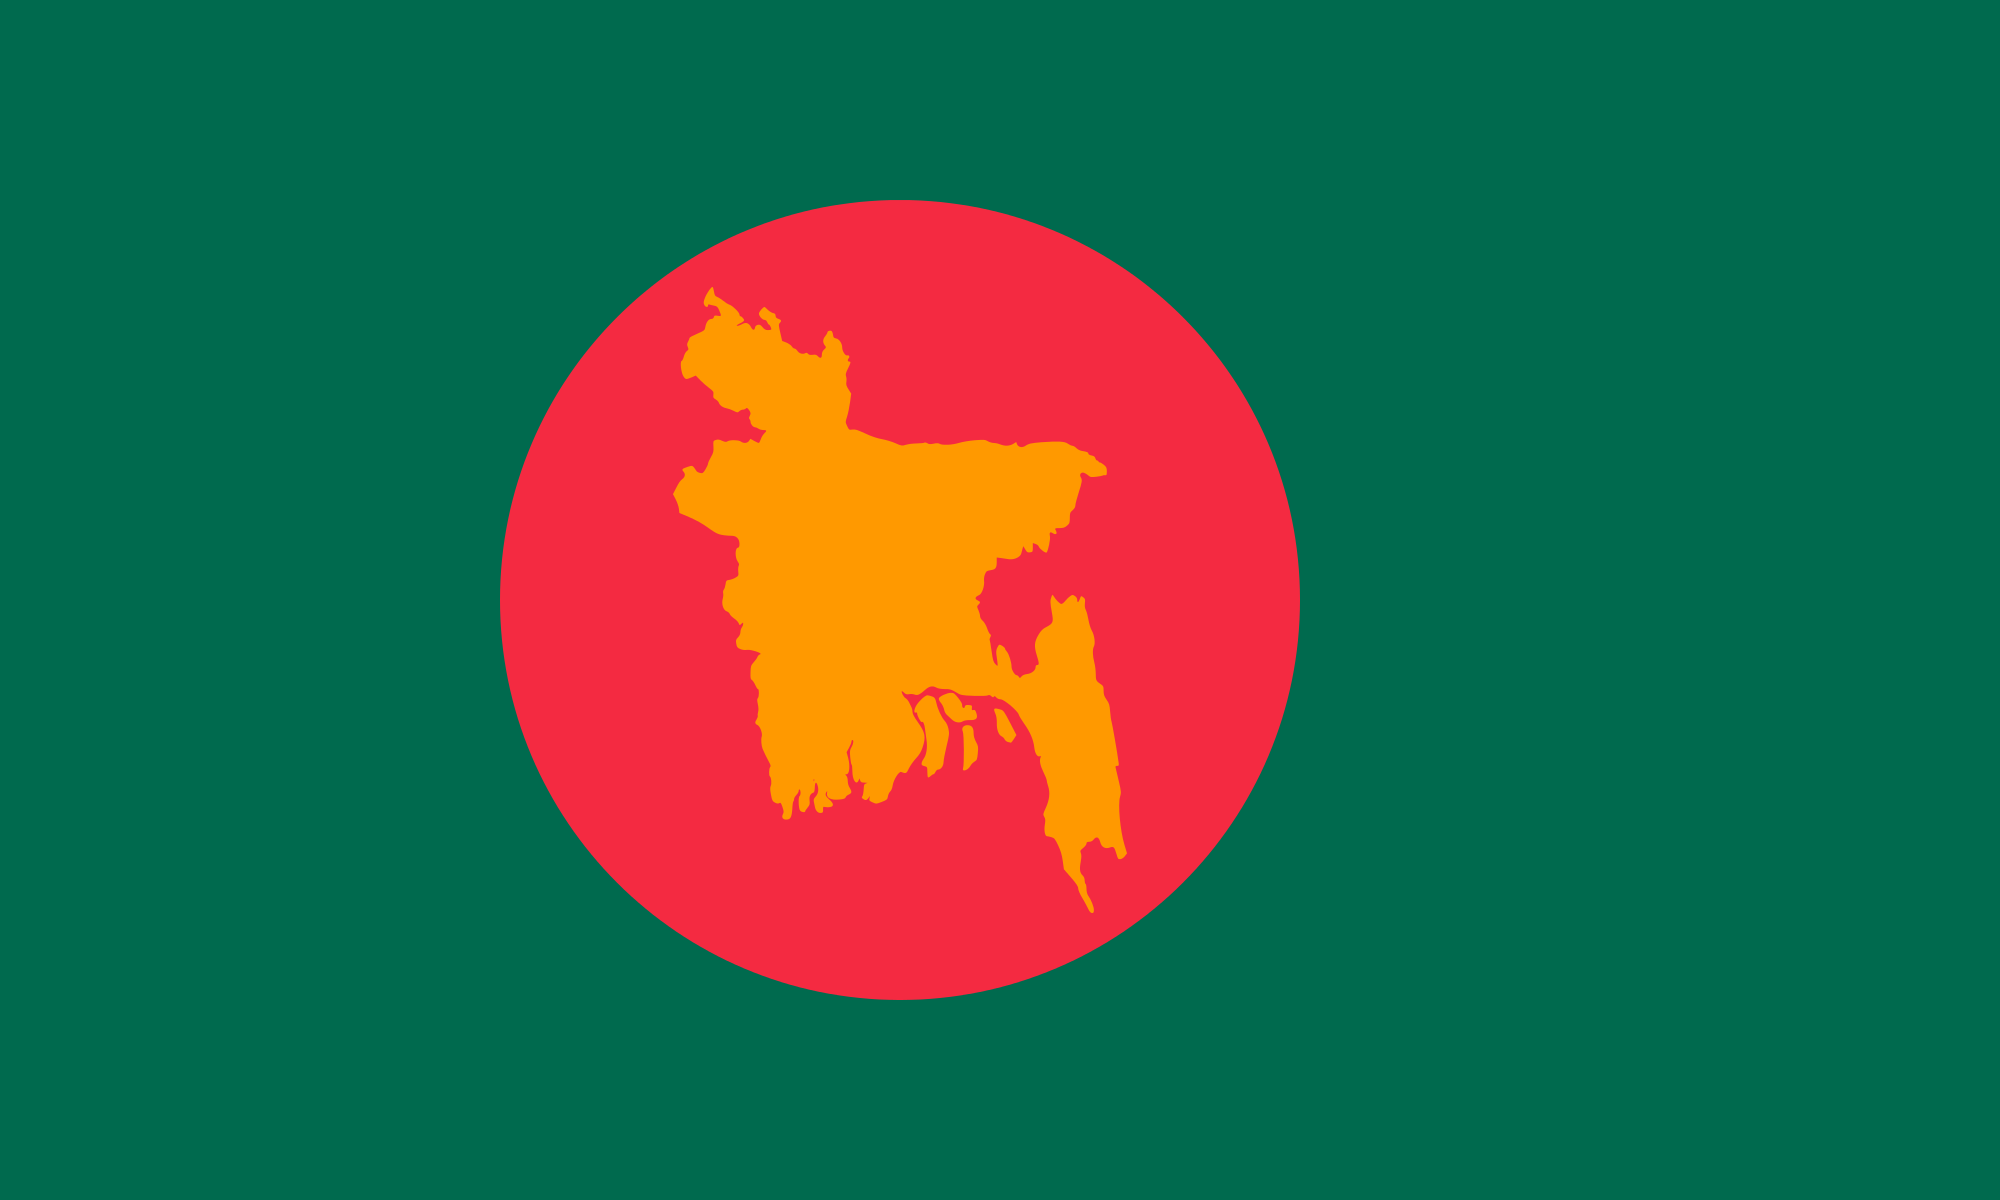 High Resolution Wallpaper | Flag Of Bangladesh 2000x1200 px